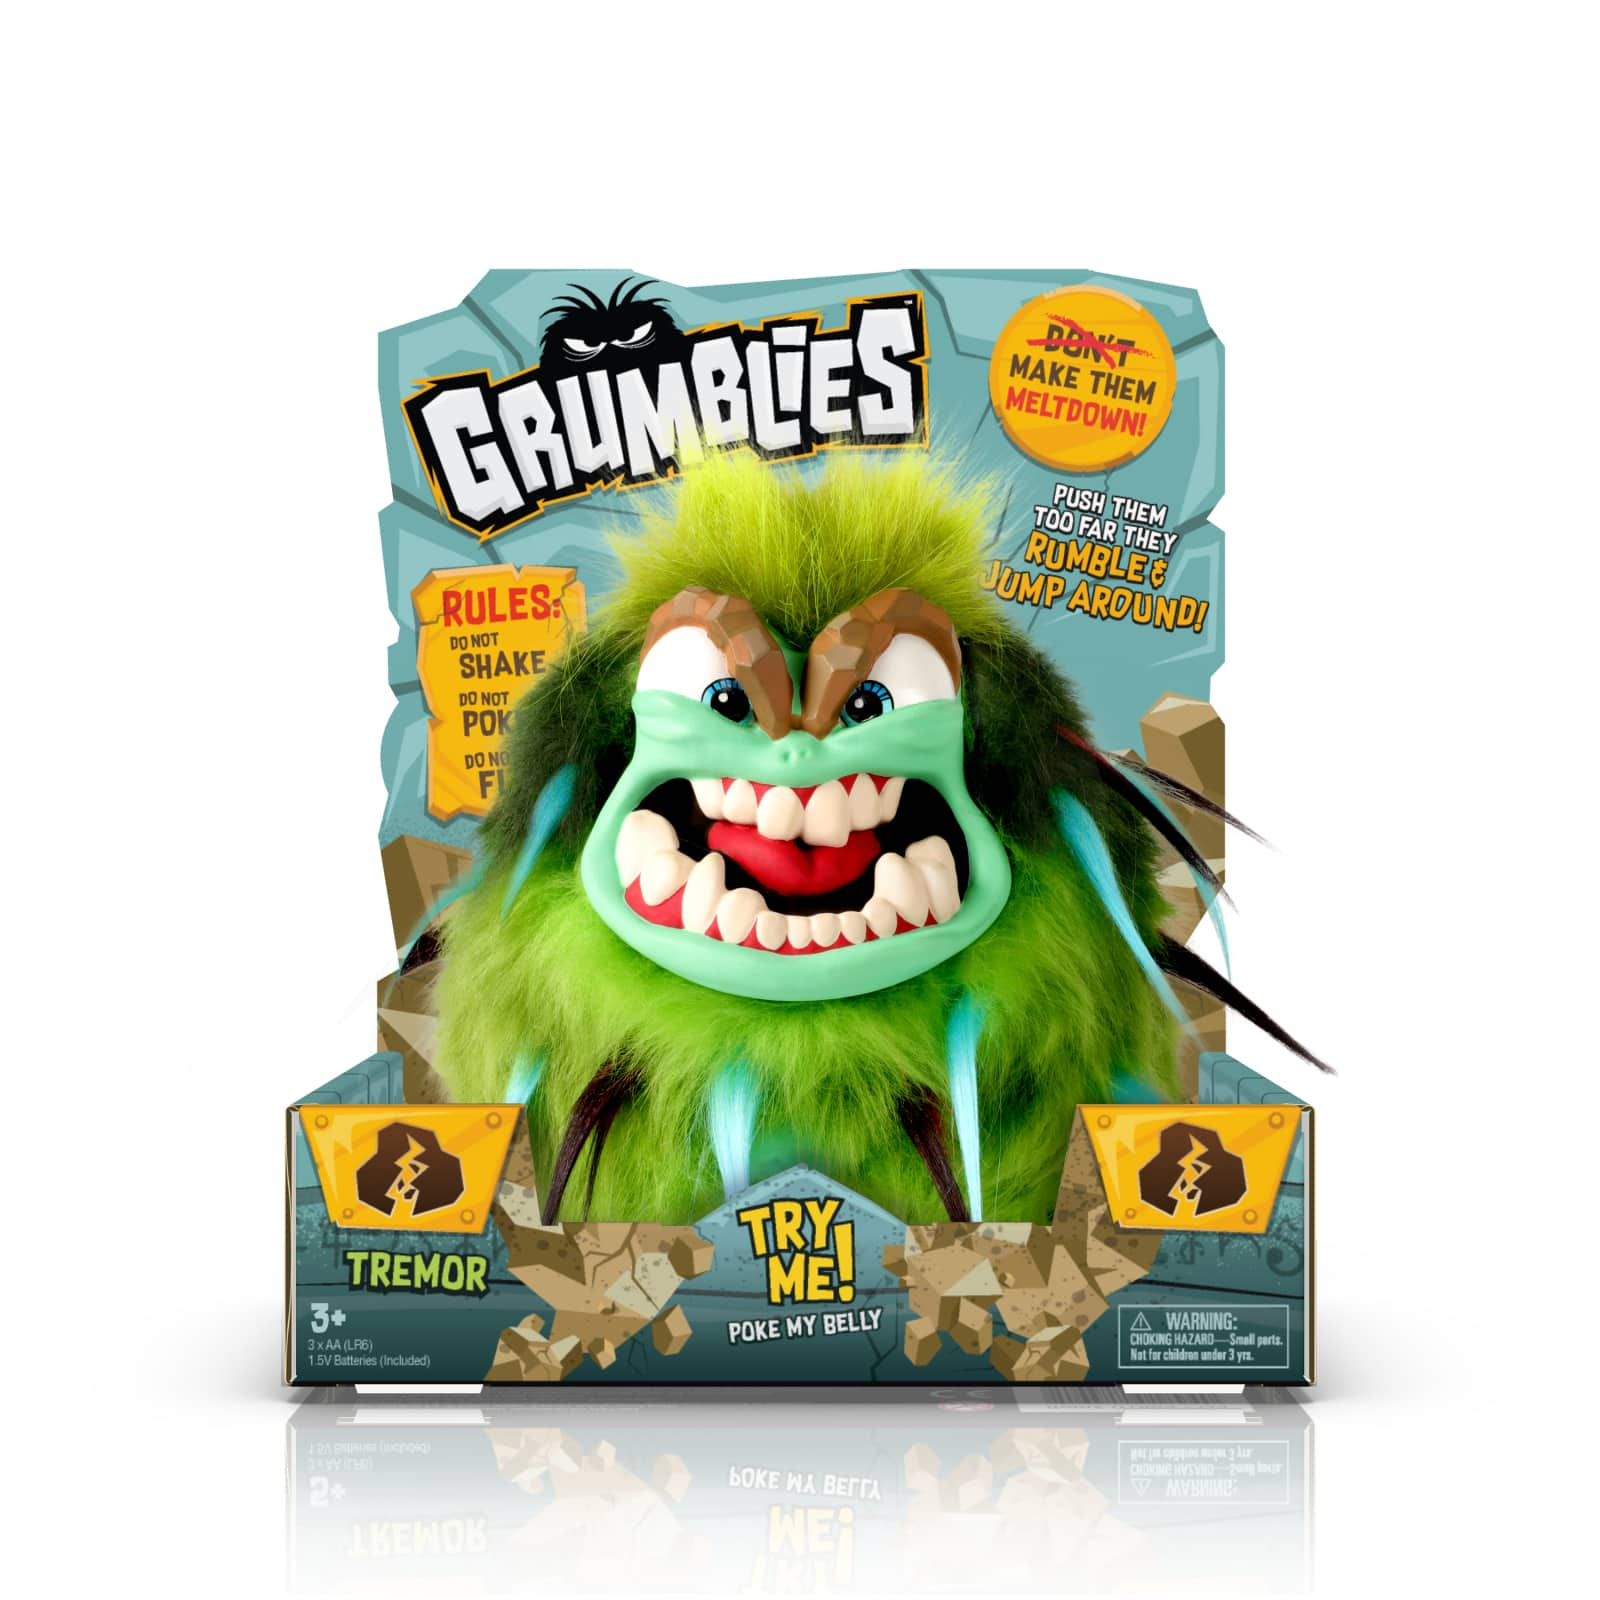 Grumblies Hydro Green $7.50 + Free store pickup at Walmart